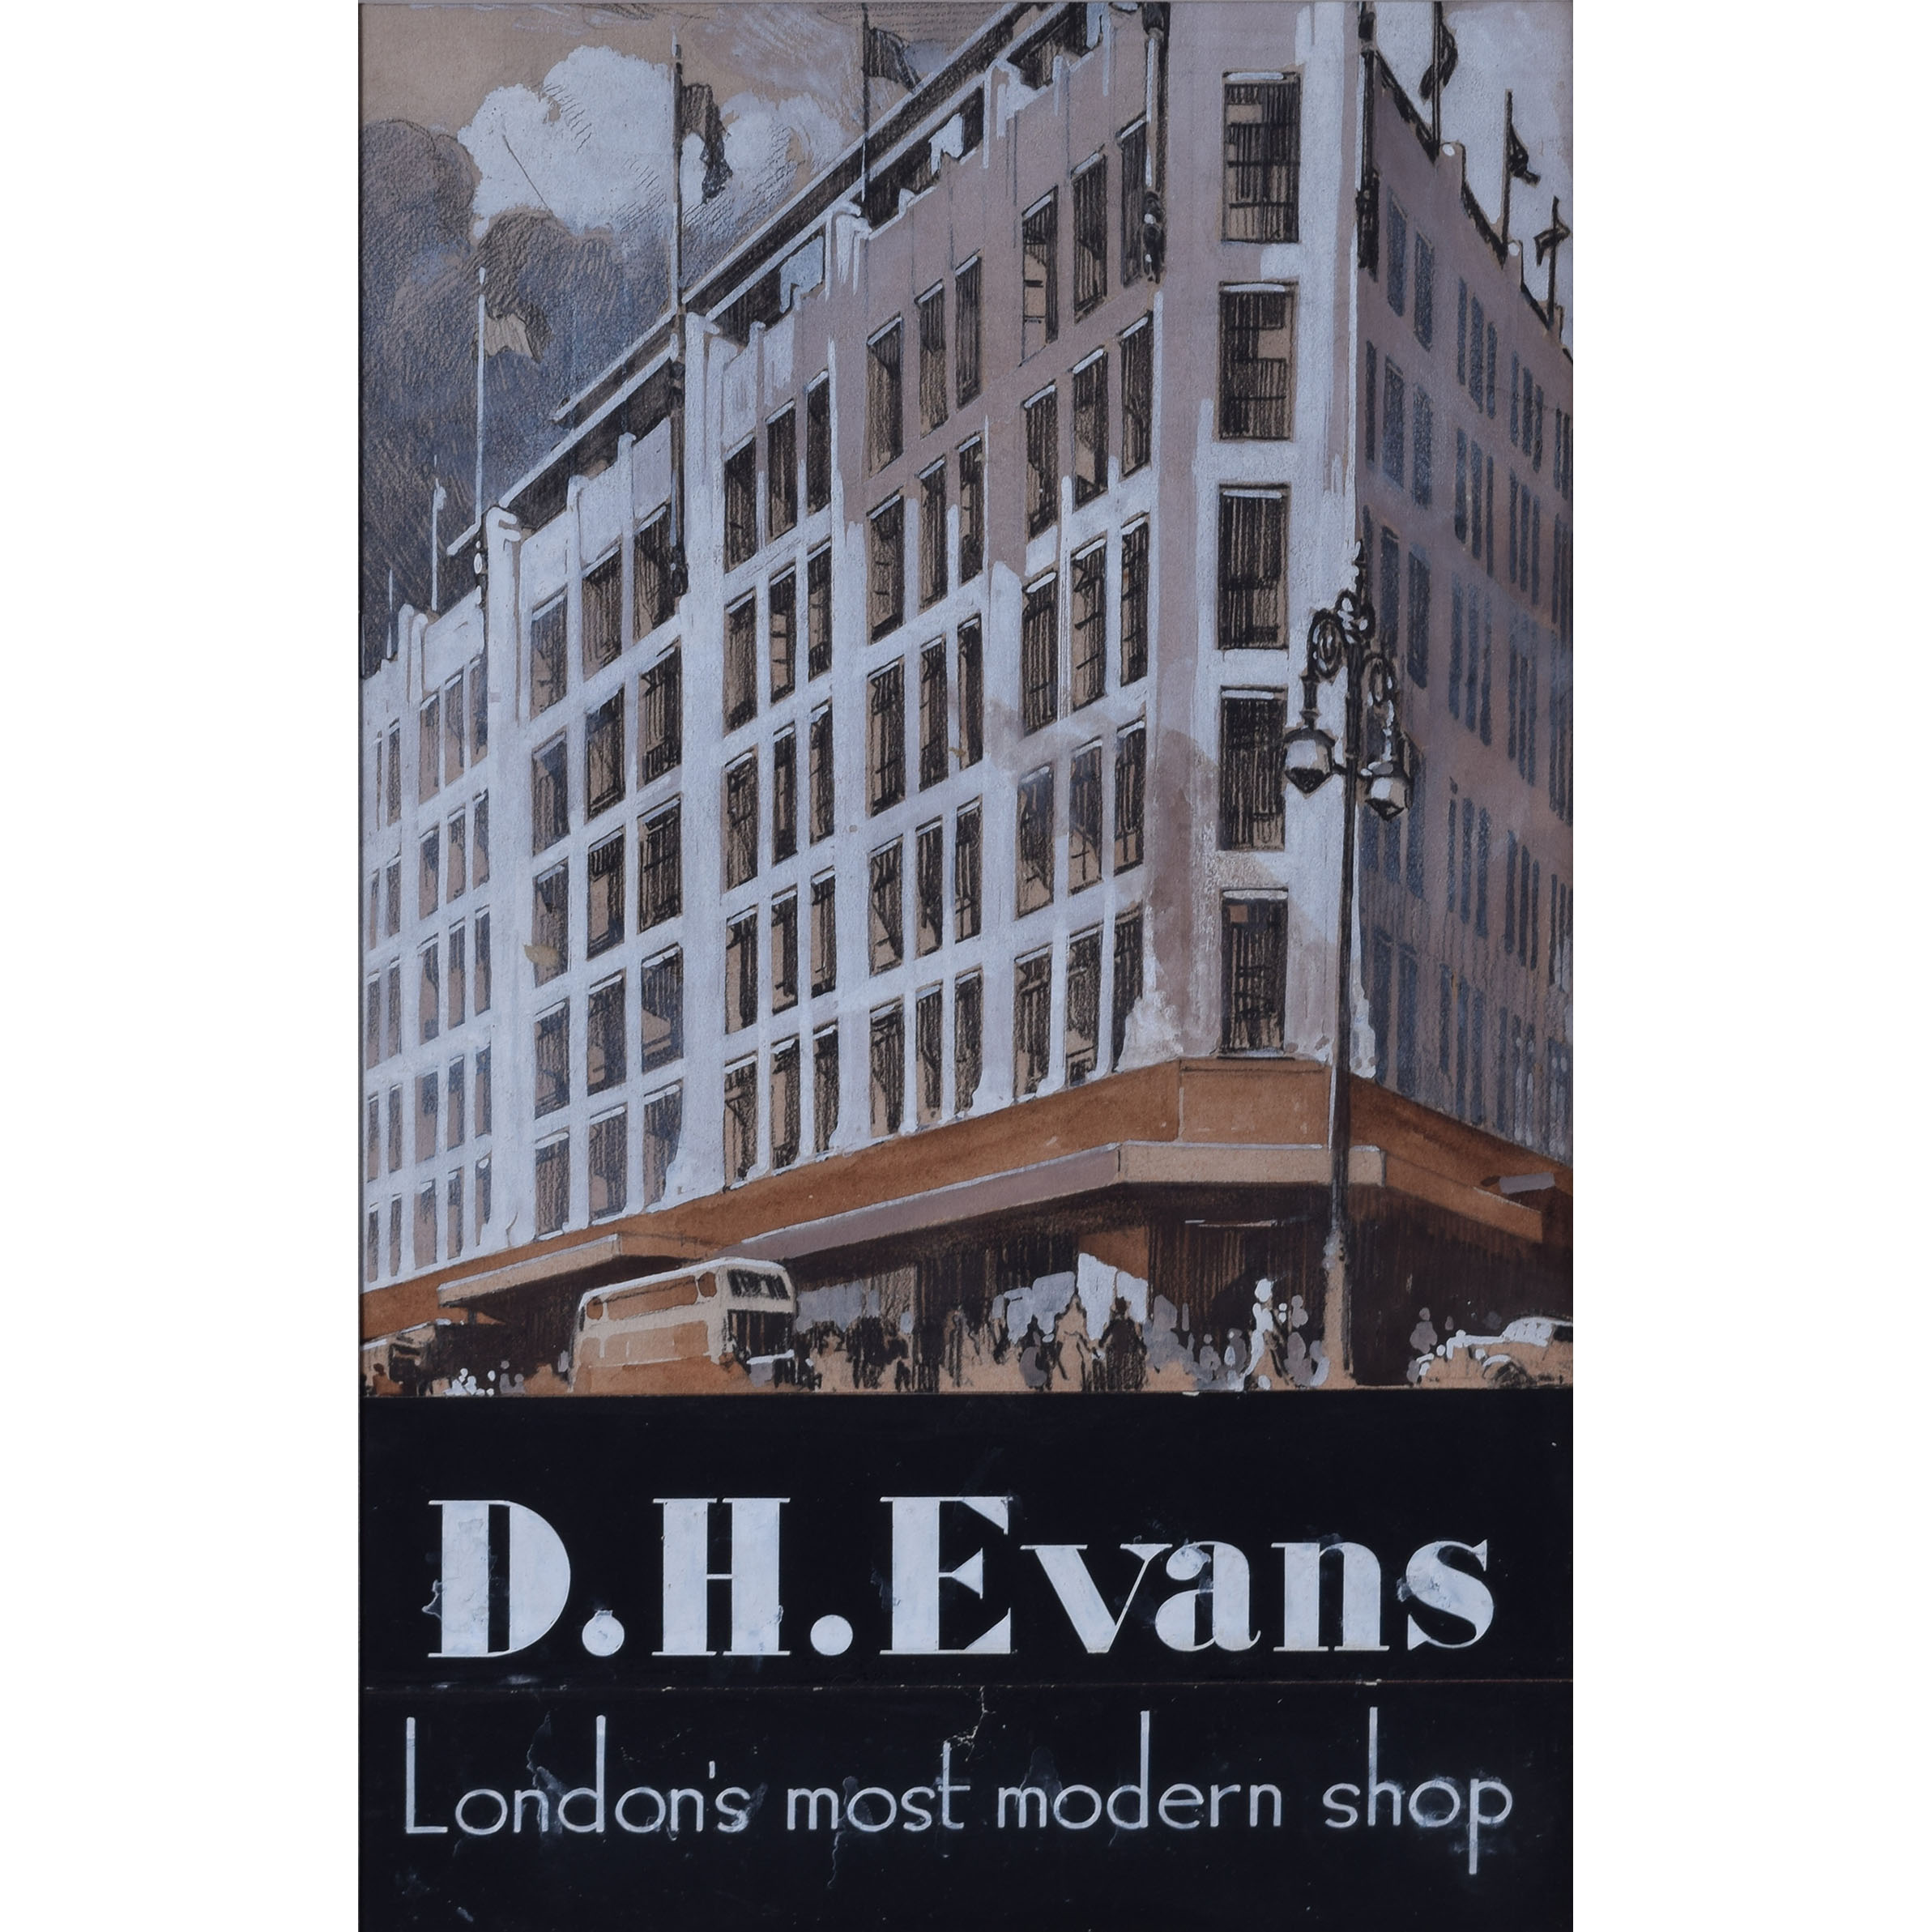 DH Evans Original Design for Advertising